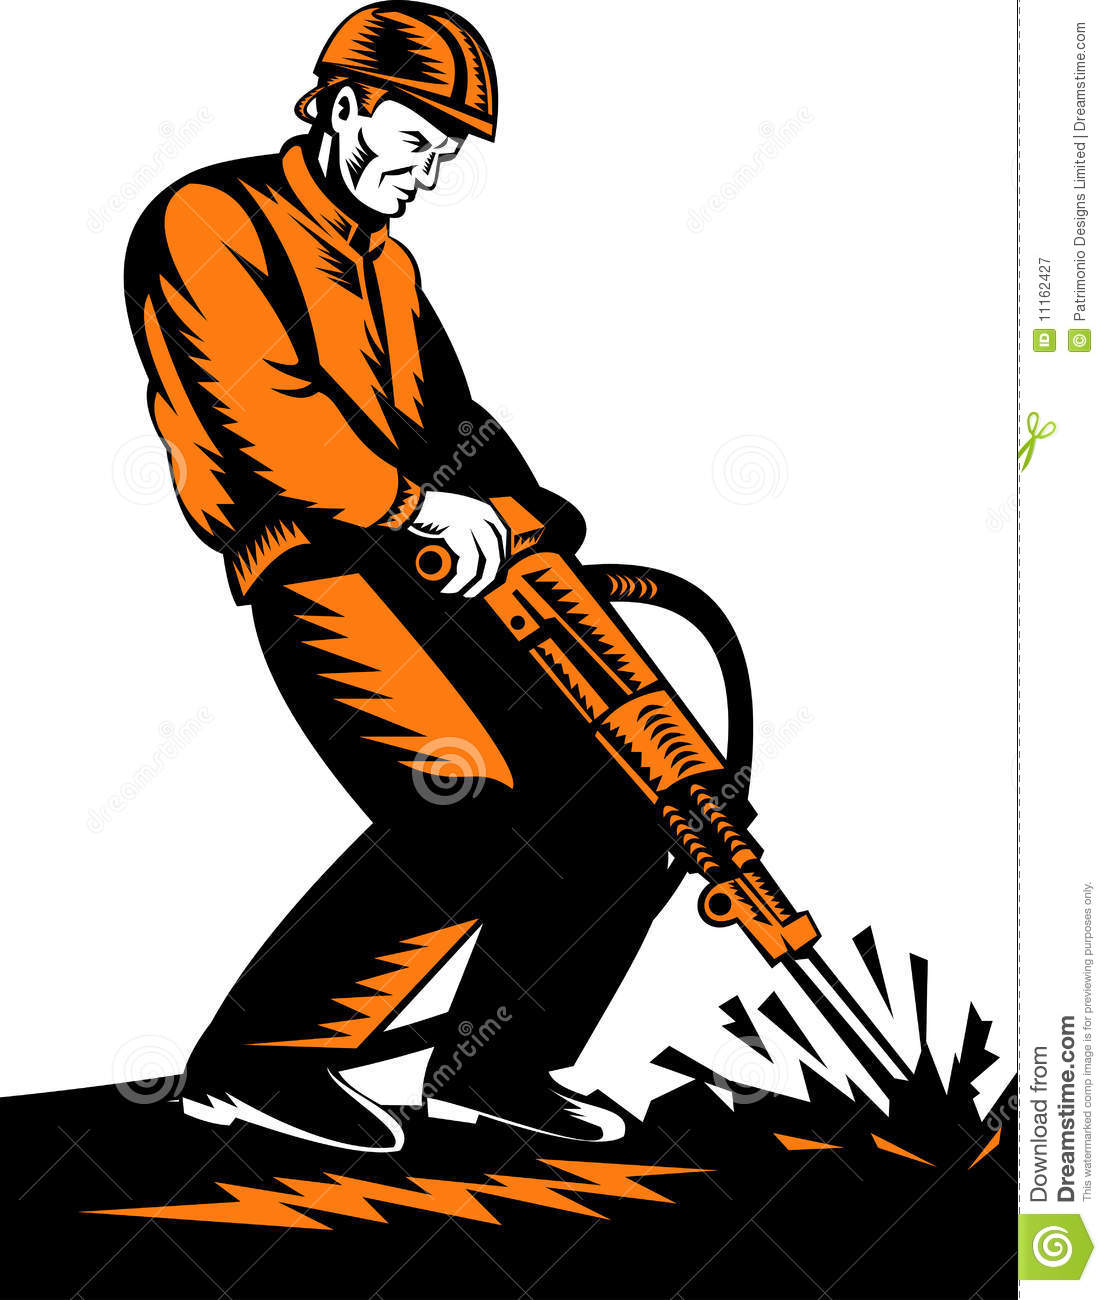 Construction Worker With Jackhammer Royalty Free Stock Photography ...